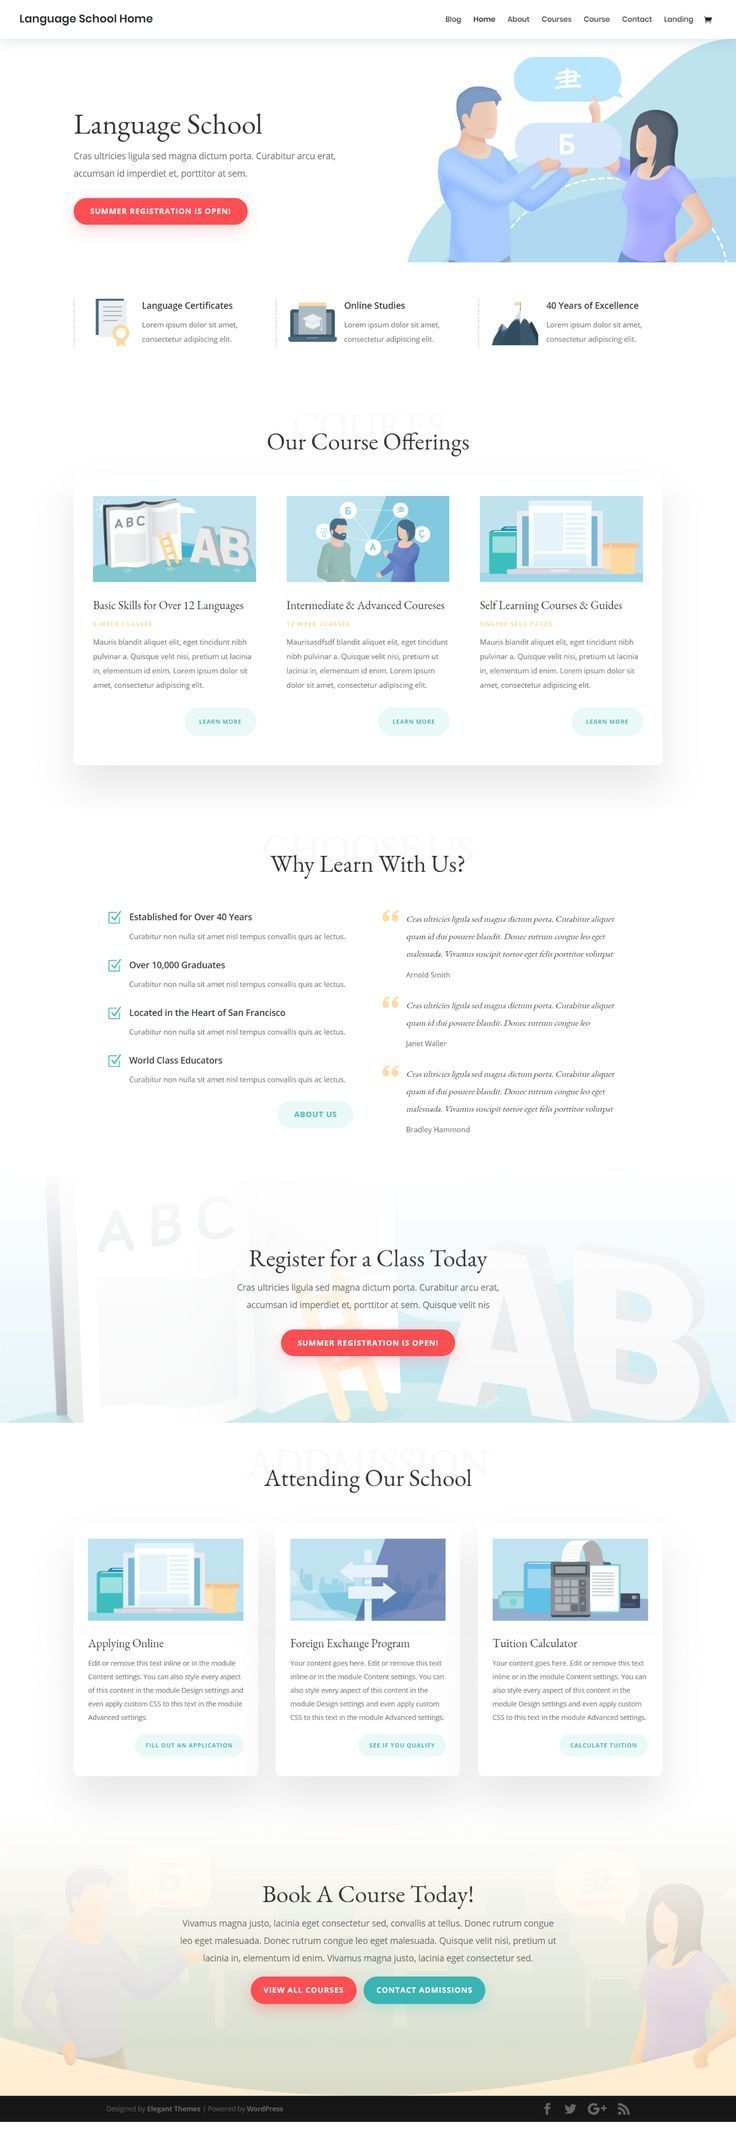 Language School Landing Page Elegant Themes Learning Website Design Business Web Design Corporate Web Design